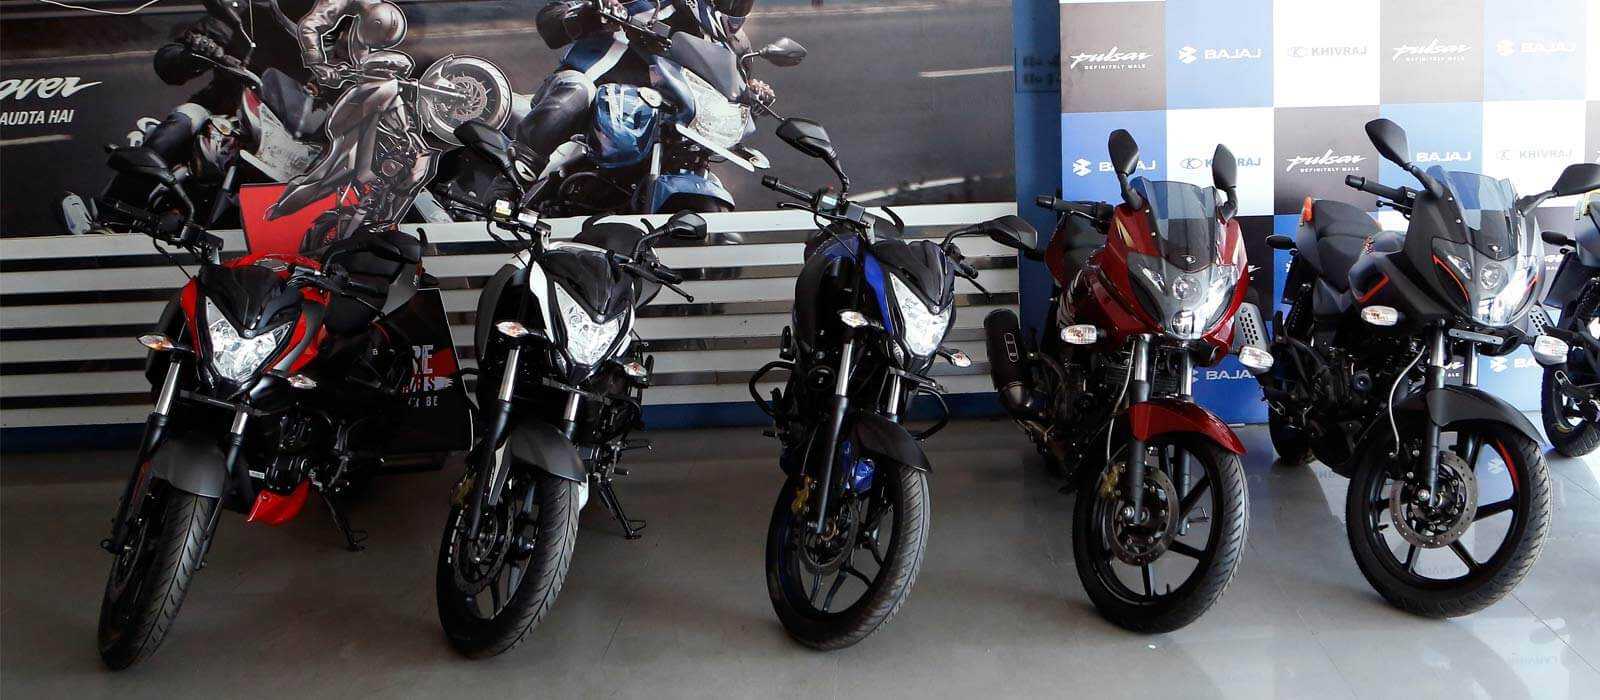 Bajaj Pulsar 150 price in Chennai